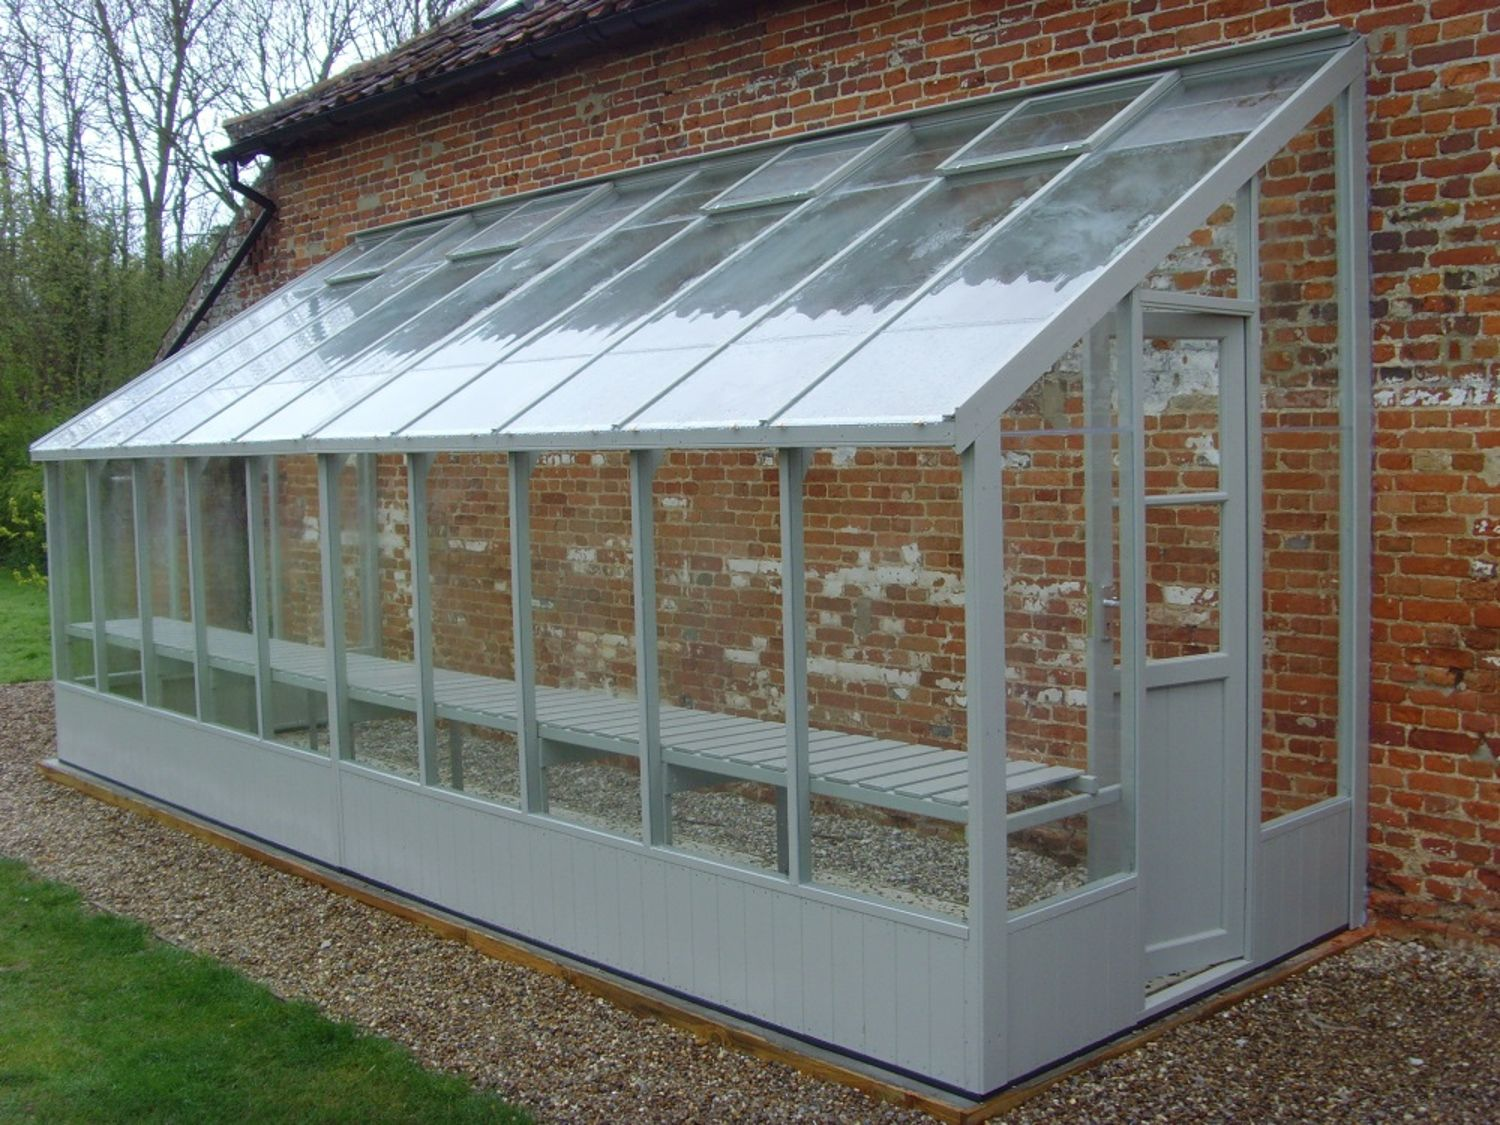 Swallow dove 6x20 lean to greenhouse greenhouse stores for Small wooden greenhouse plans